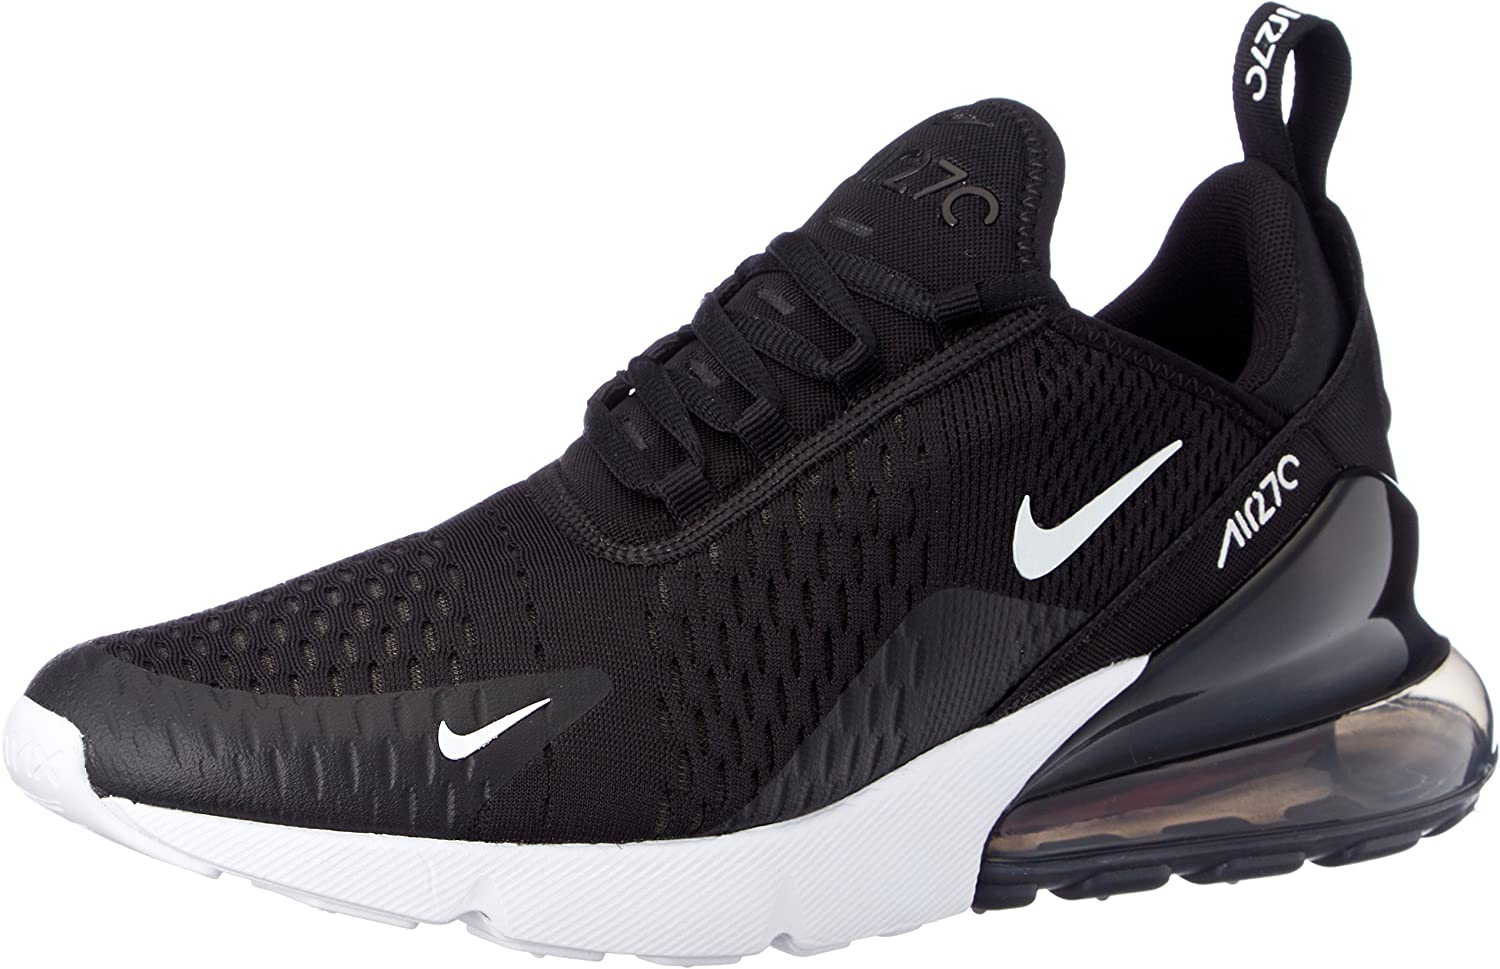 Nike Mens Air Max 270 Running Shoes Black Anthracite White Solar Red AH8050-002 Size